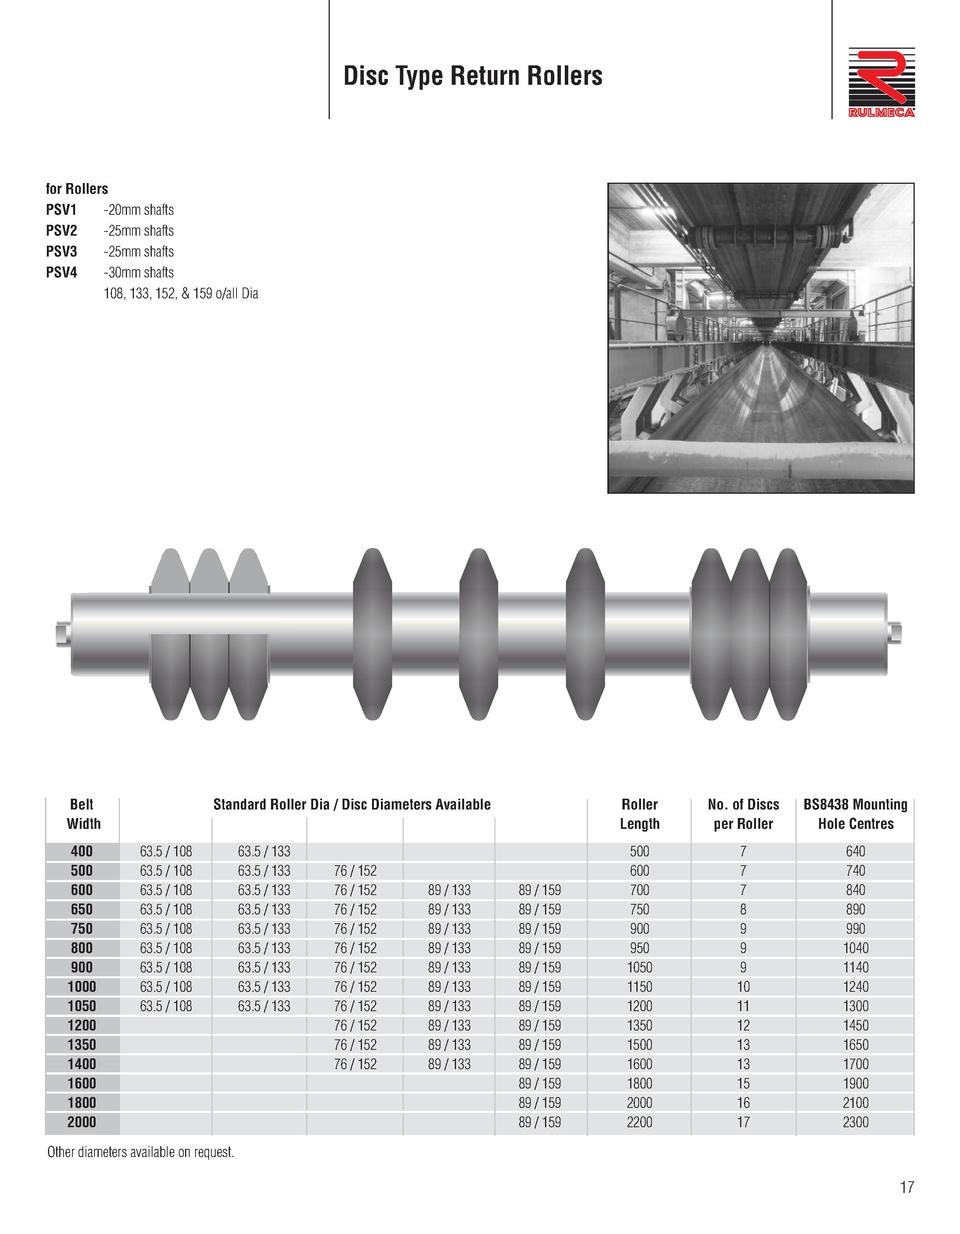 Disc Type Return Rollers  for Rollers PSV1 -20mm shafts PSV2 -25mm shafts PSV3 -25mm shafts PSV4 -30mm shafts 108, 133, 15...